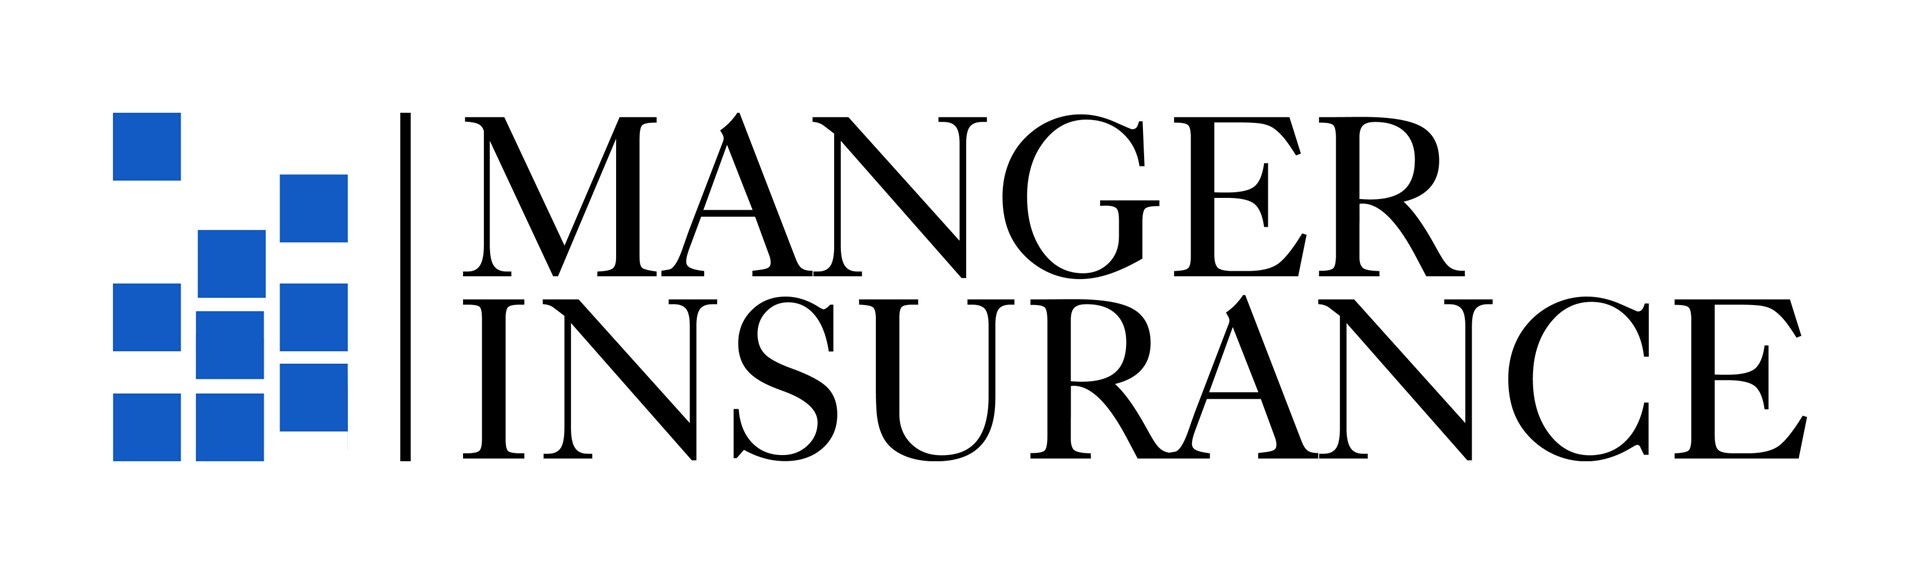 Manager Insurance